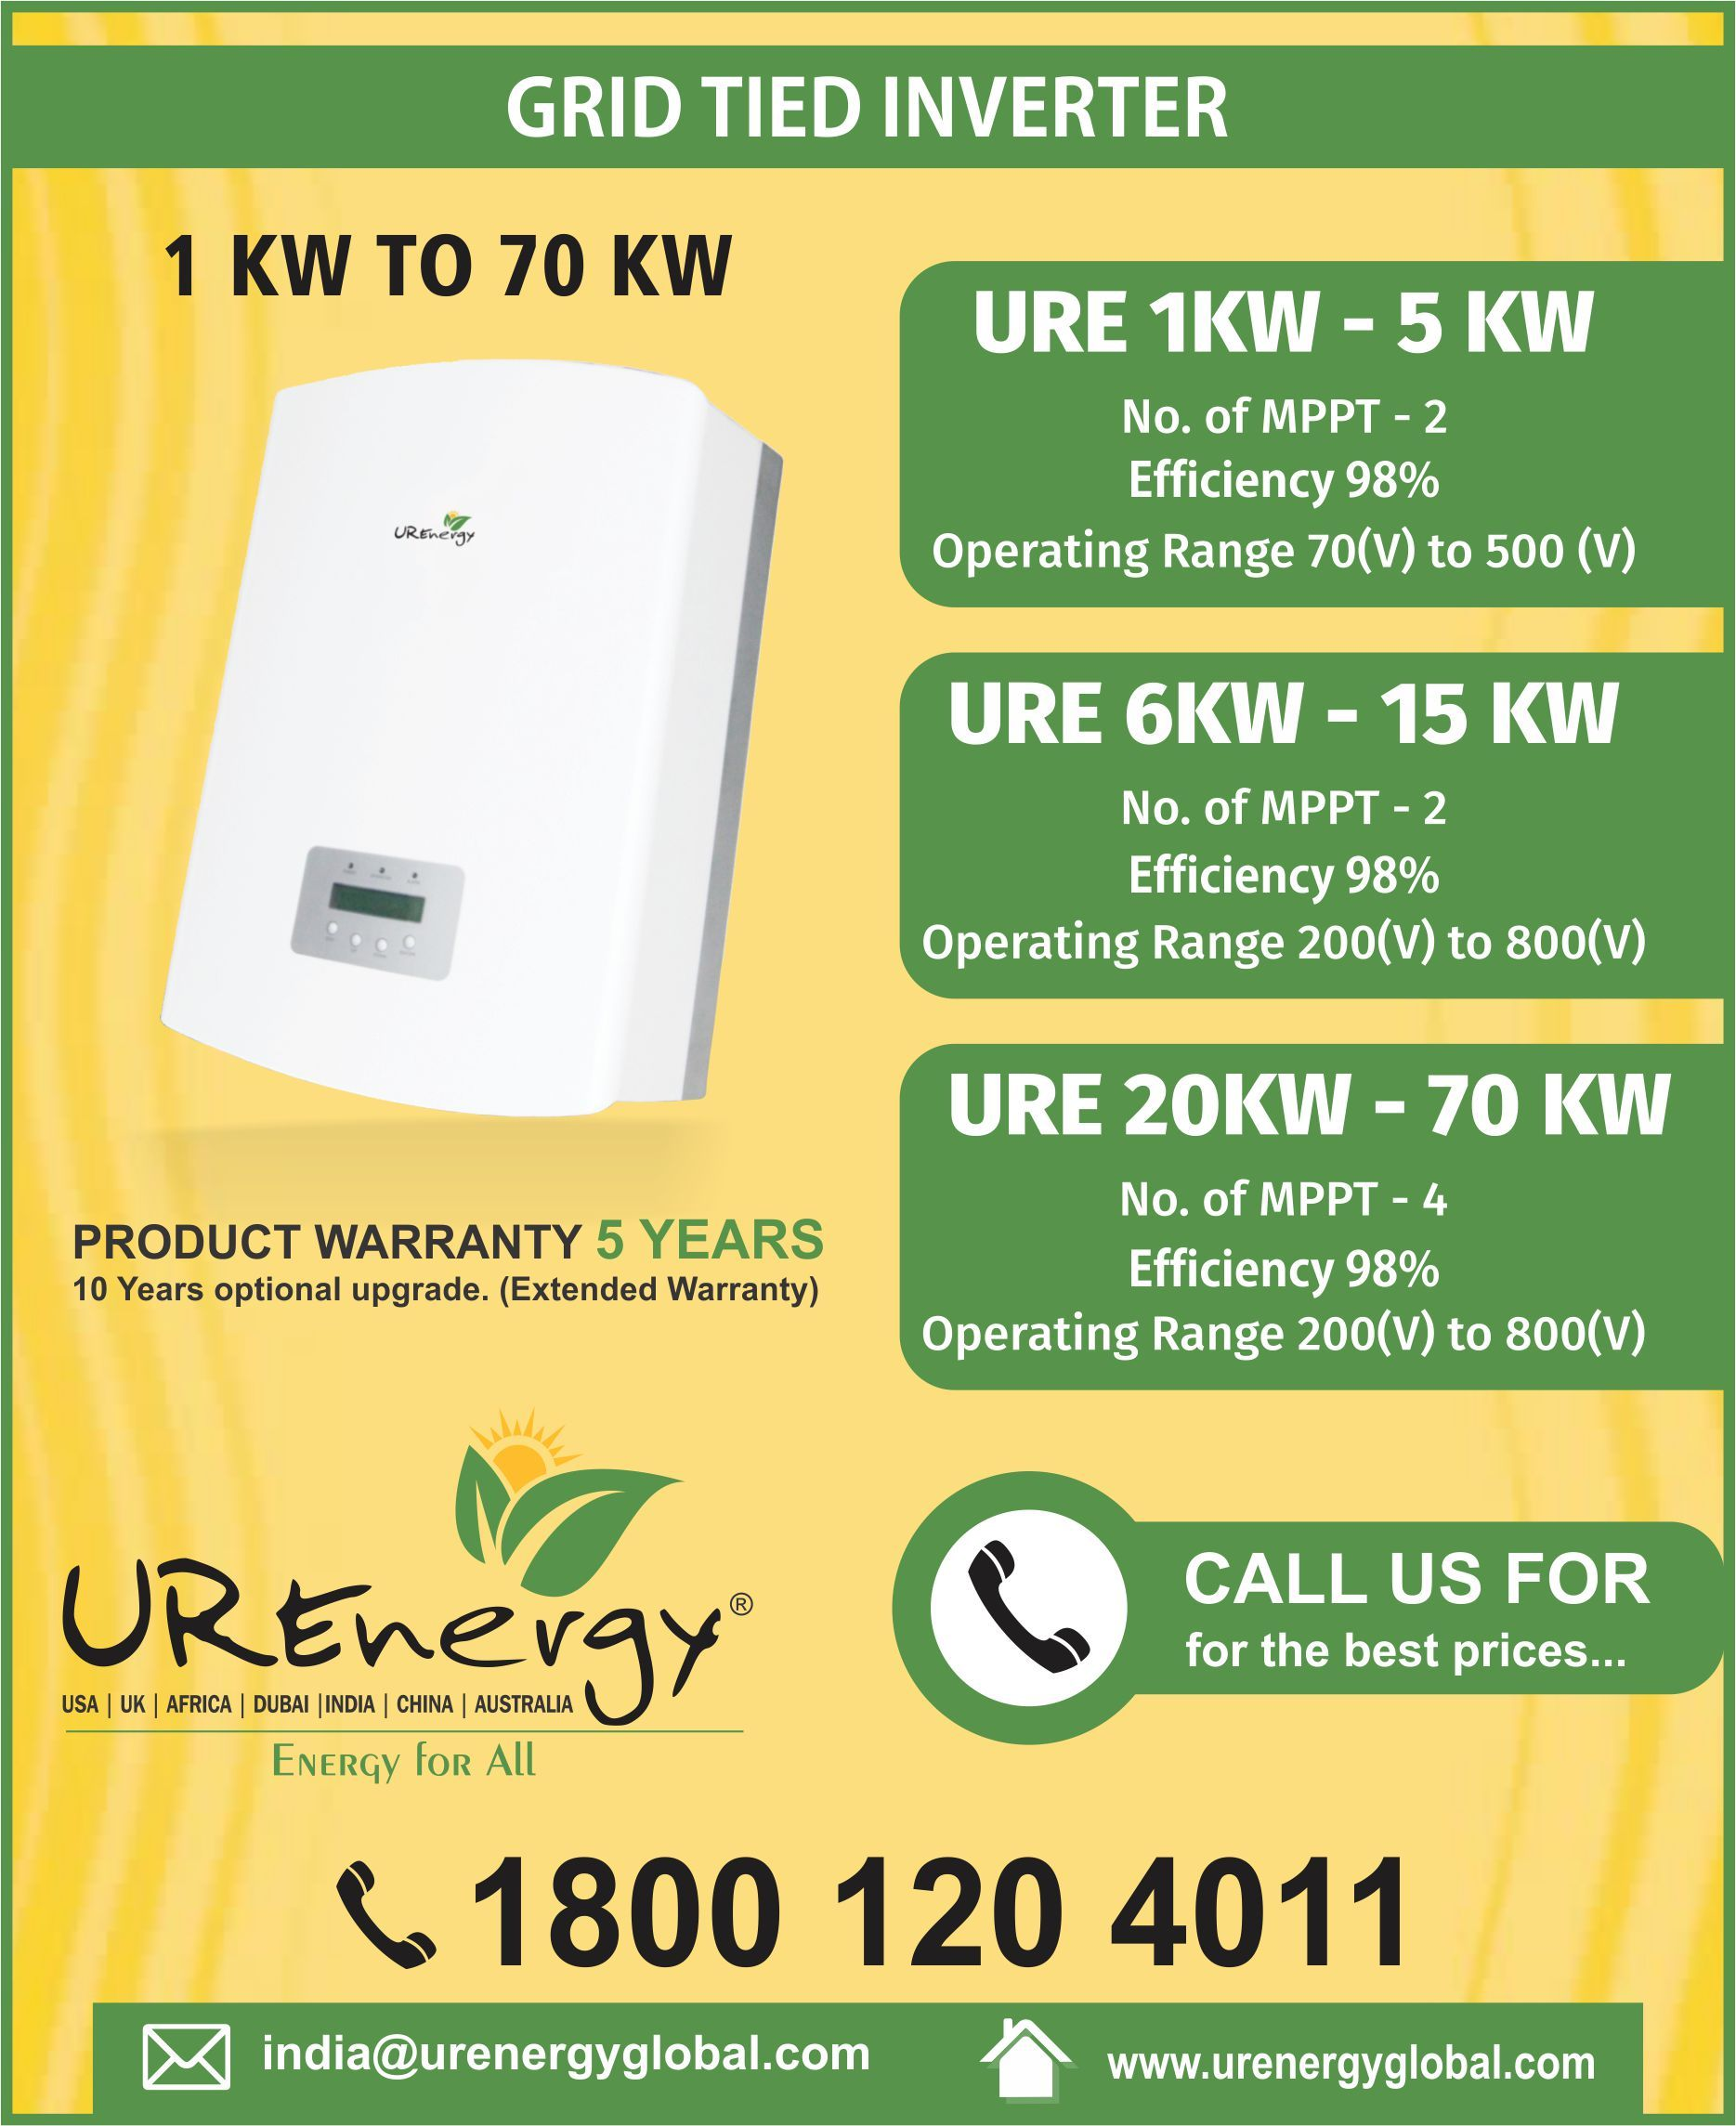 Rooftop Solar Panel Inverters Water Pump Solar Epc Gujarat India U R Energy Renewable Energy Companies Solar Water Pump Solar